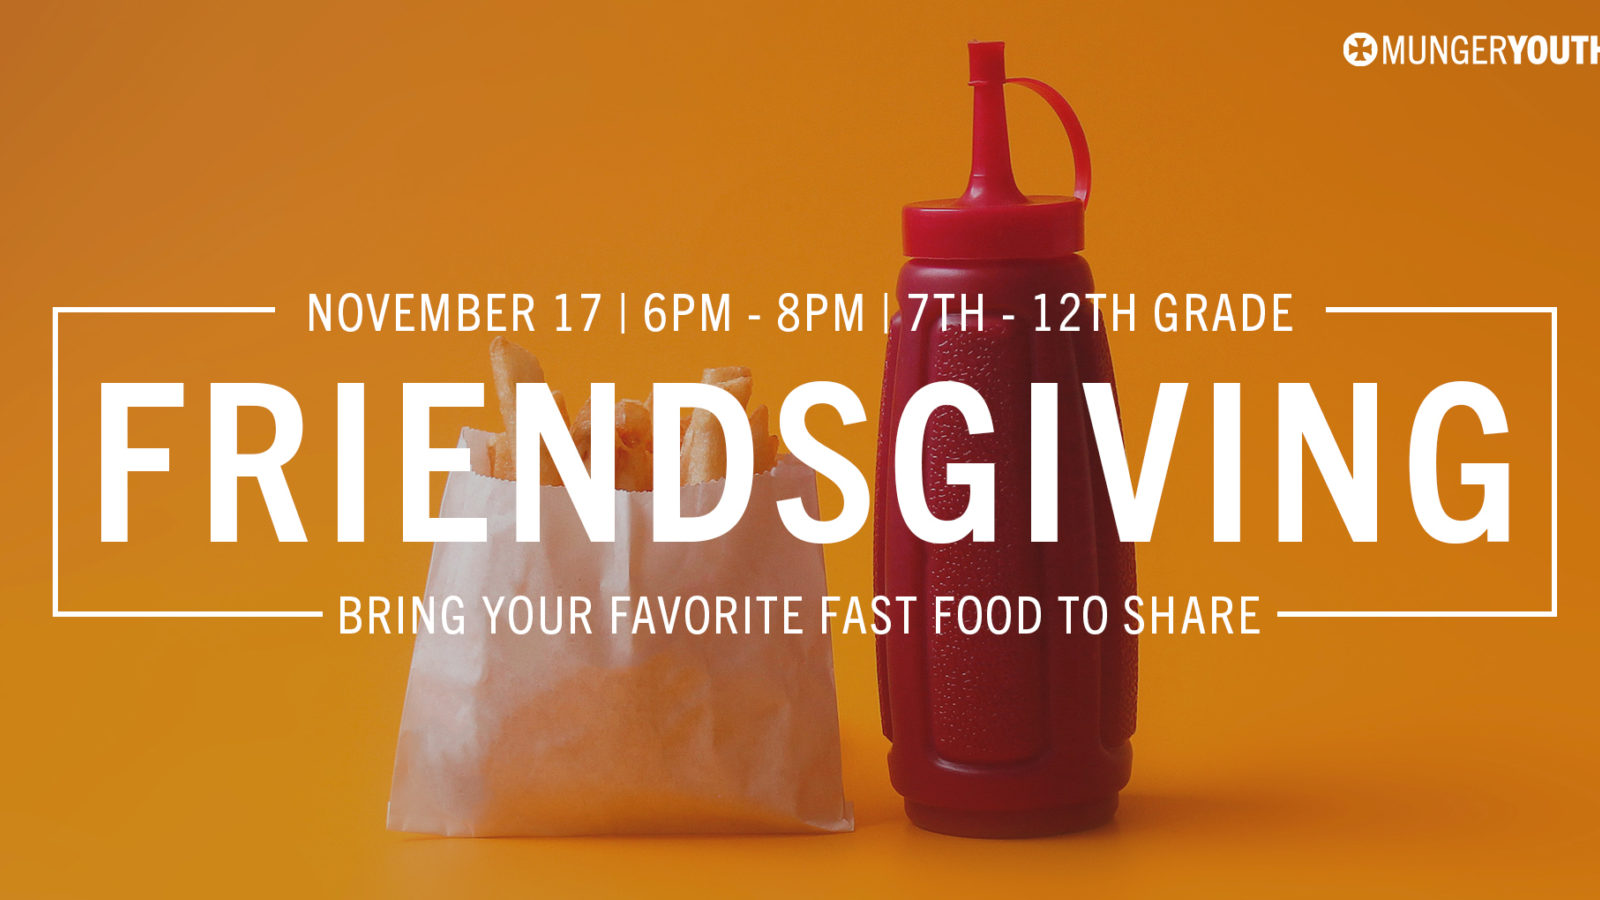 YOUTH: Fast Food Friendsgiving